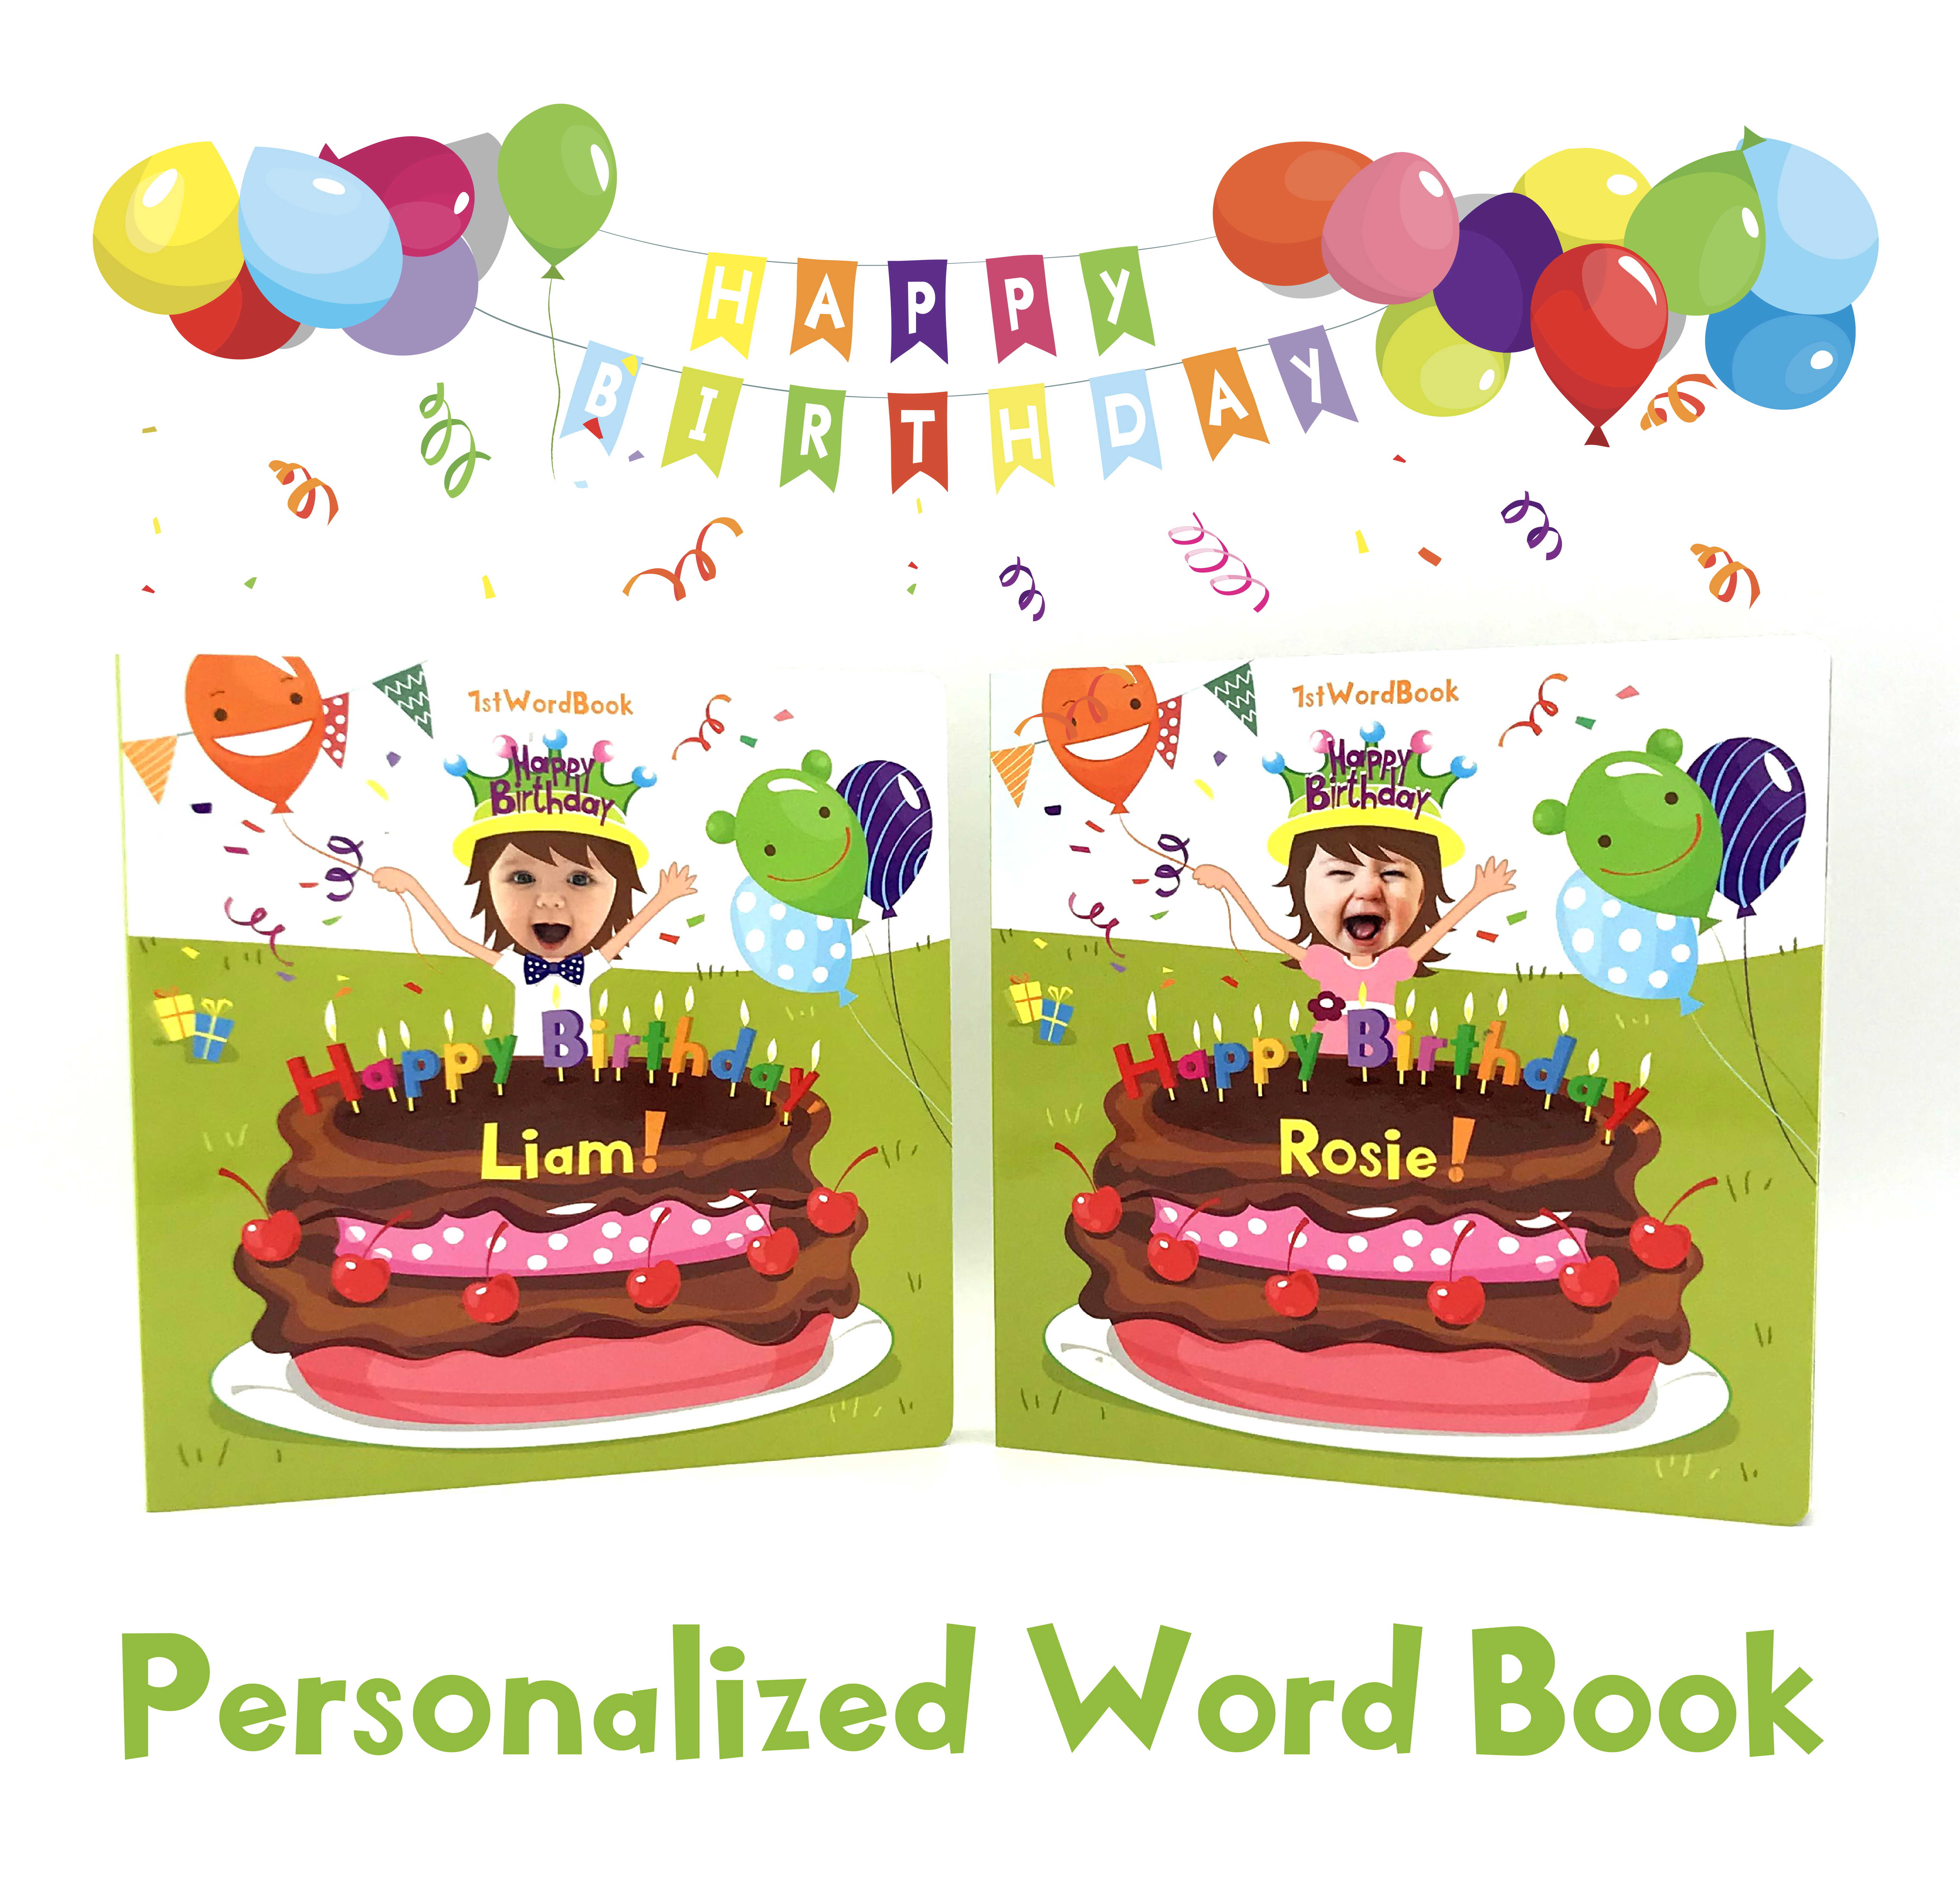 Personalized Word Books For Little Ones